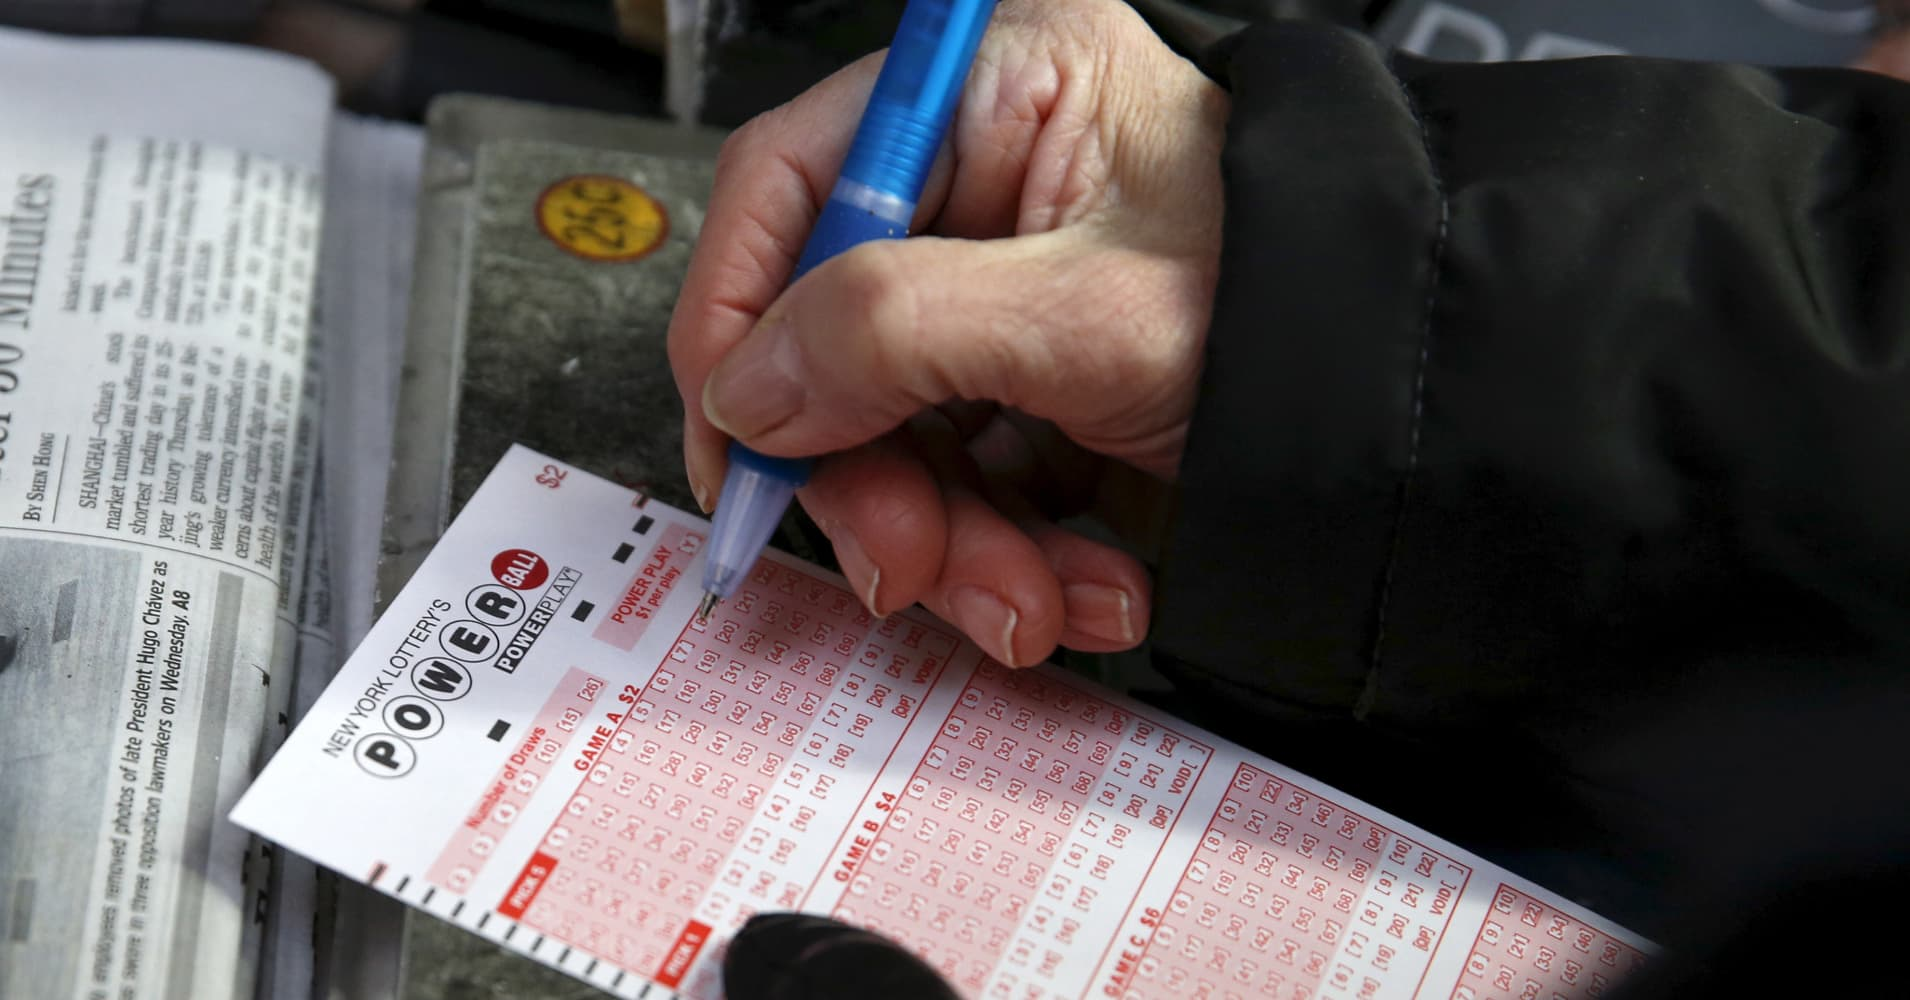 Park ranger furloughed during the government shutdown wins $29.5 million lottery jackpot